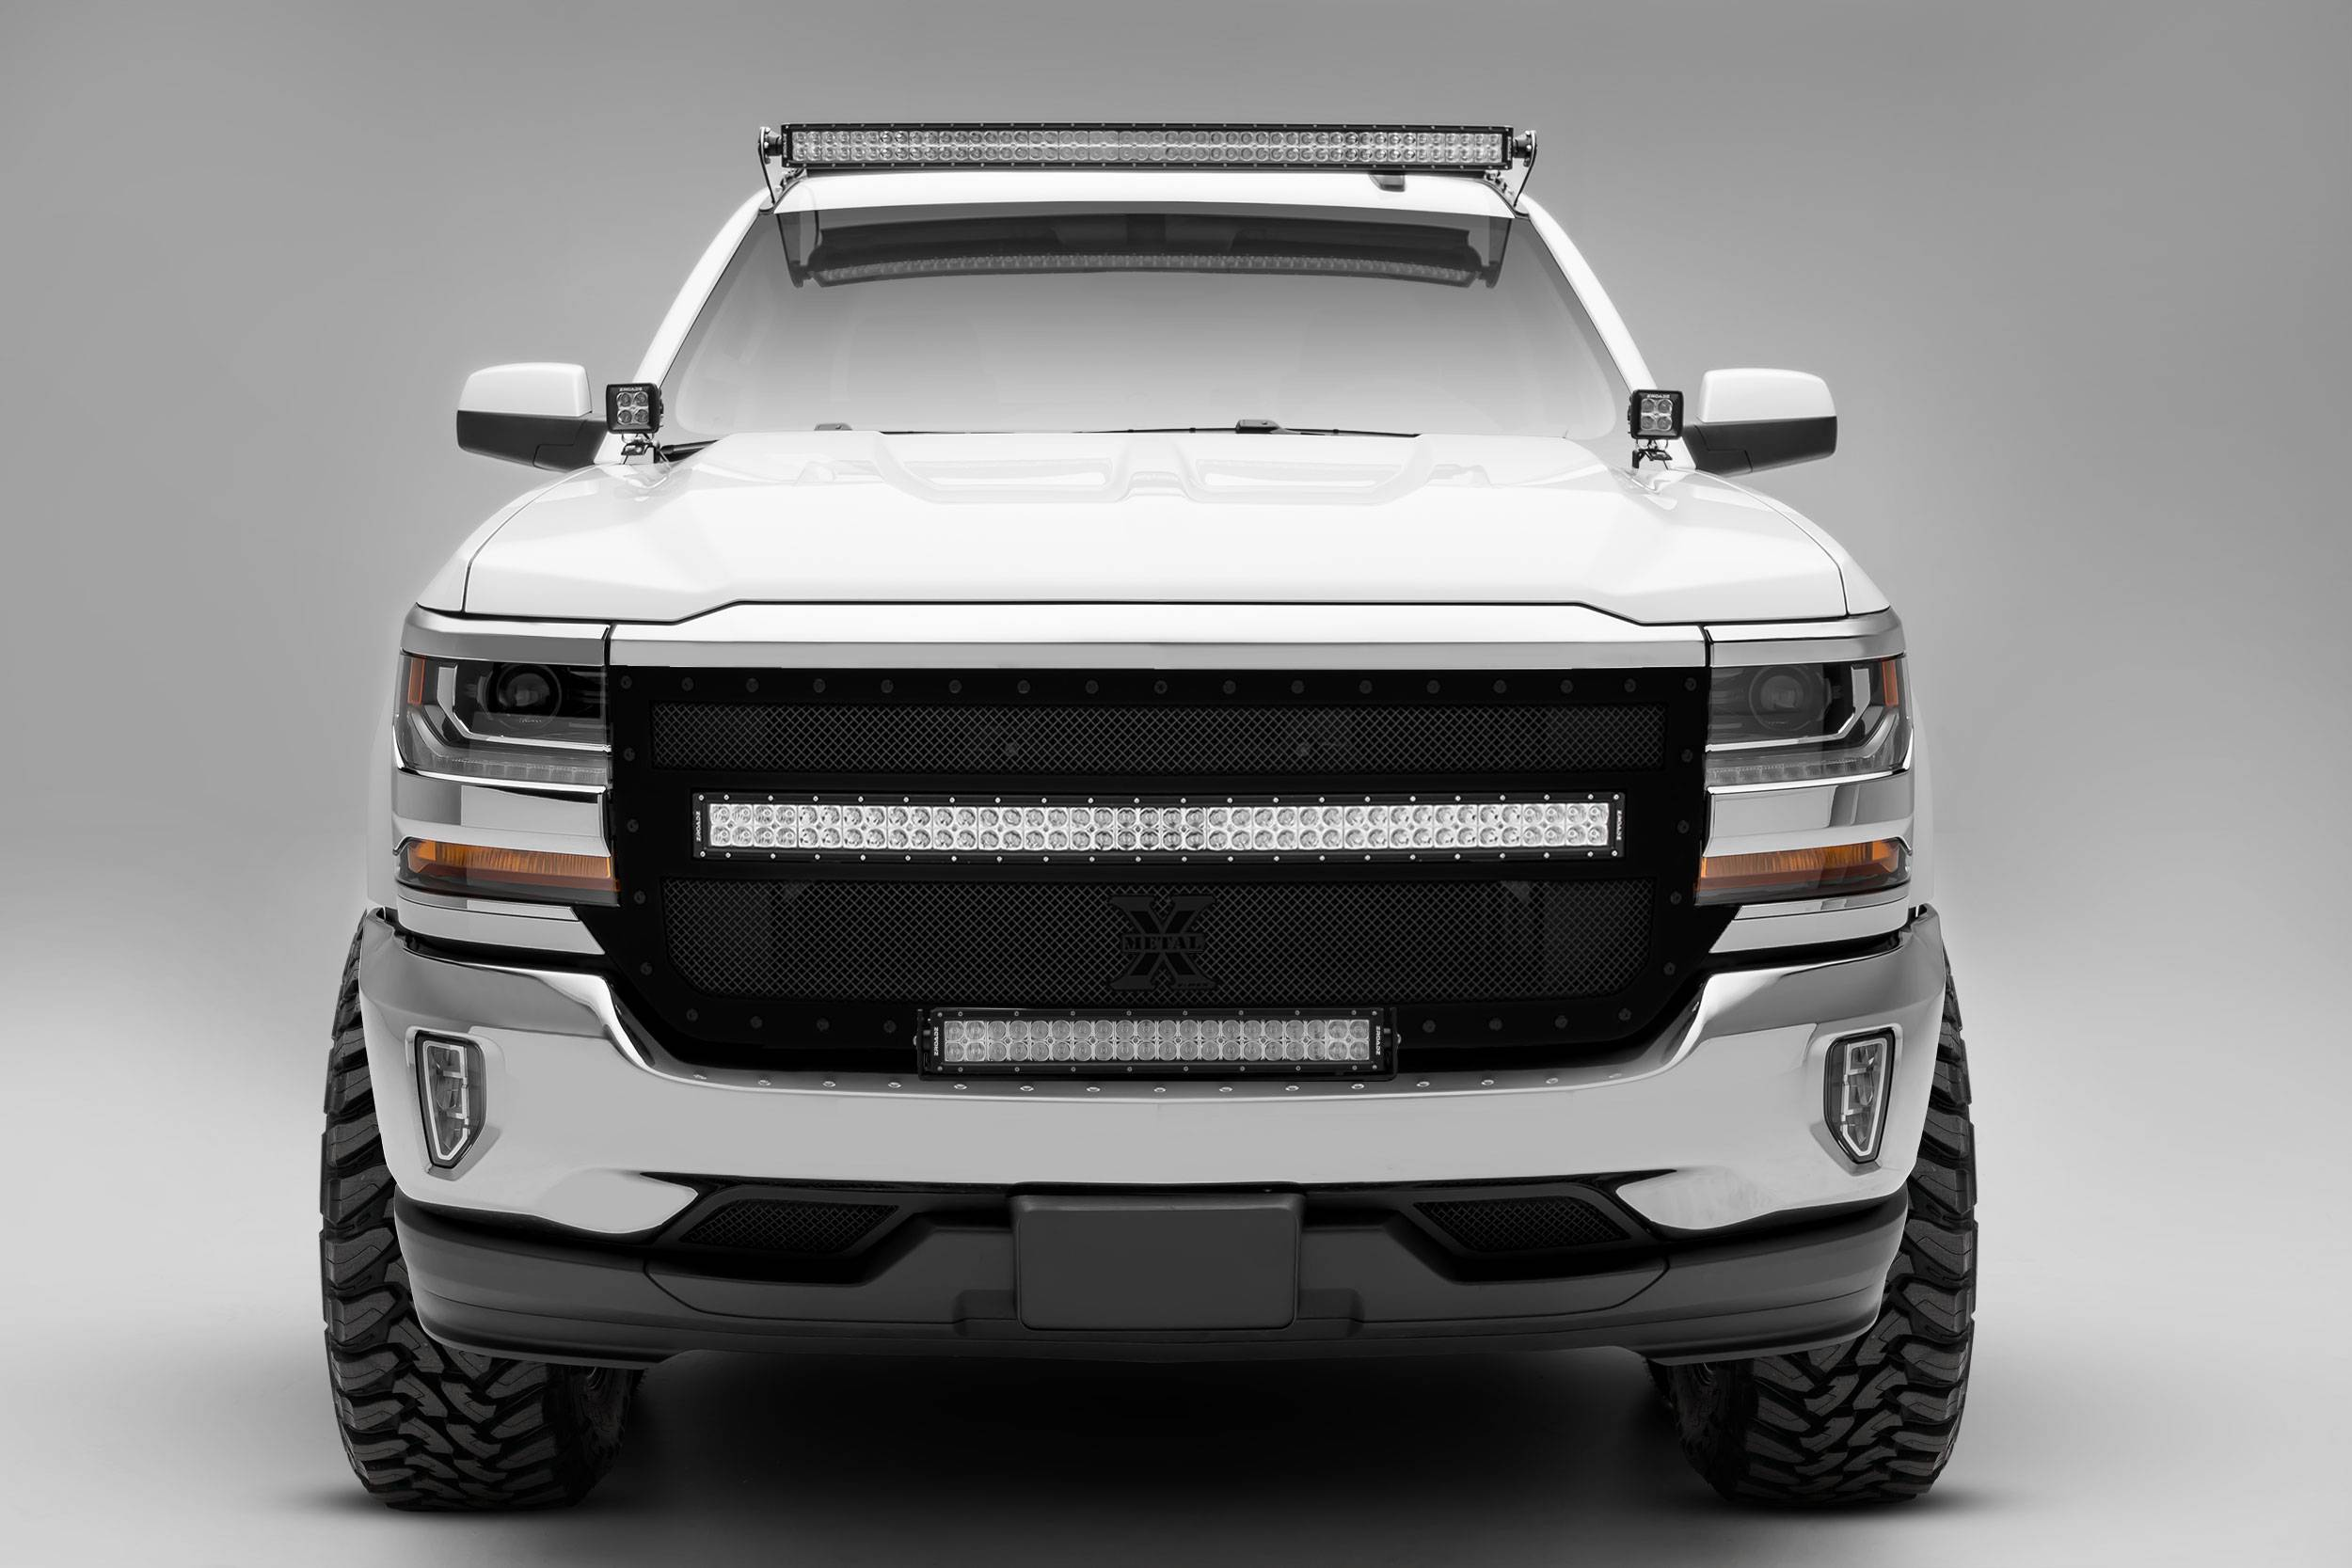 silverado sierra 1500 front roof led bracket to mount 50 inch staight led light bar pn z332181